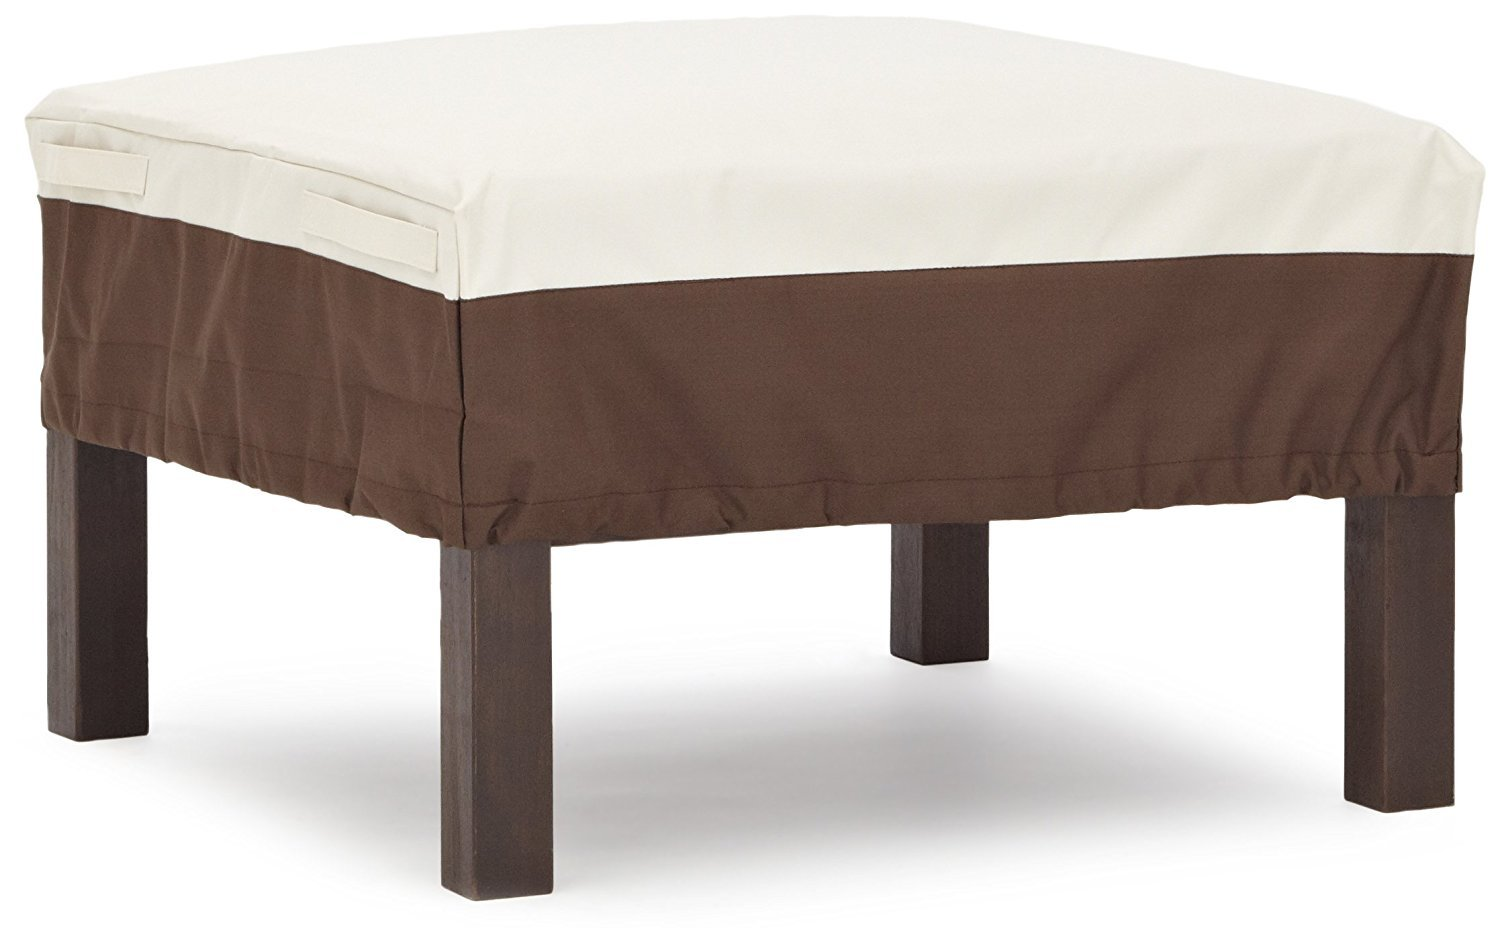 AmazonBasics Side Table Outdoor Patio Furniture Cover by AmazonBasics